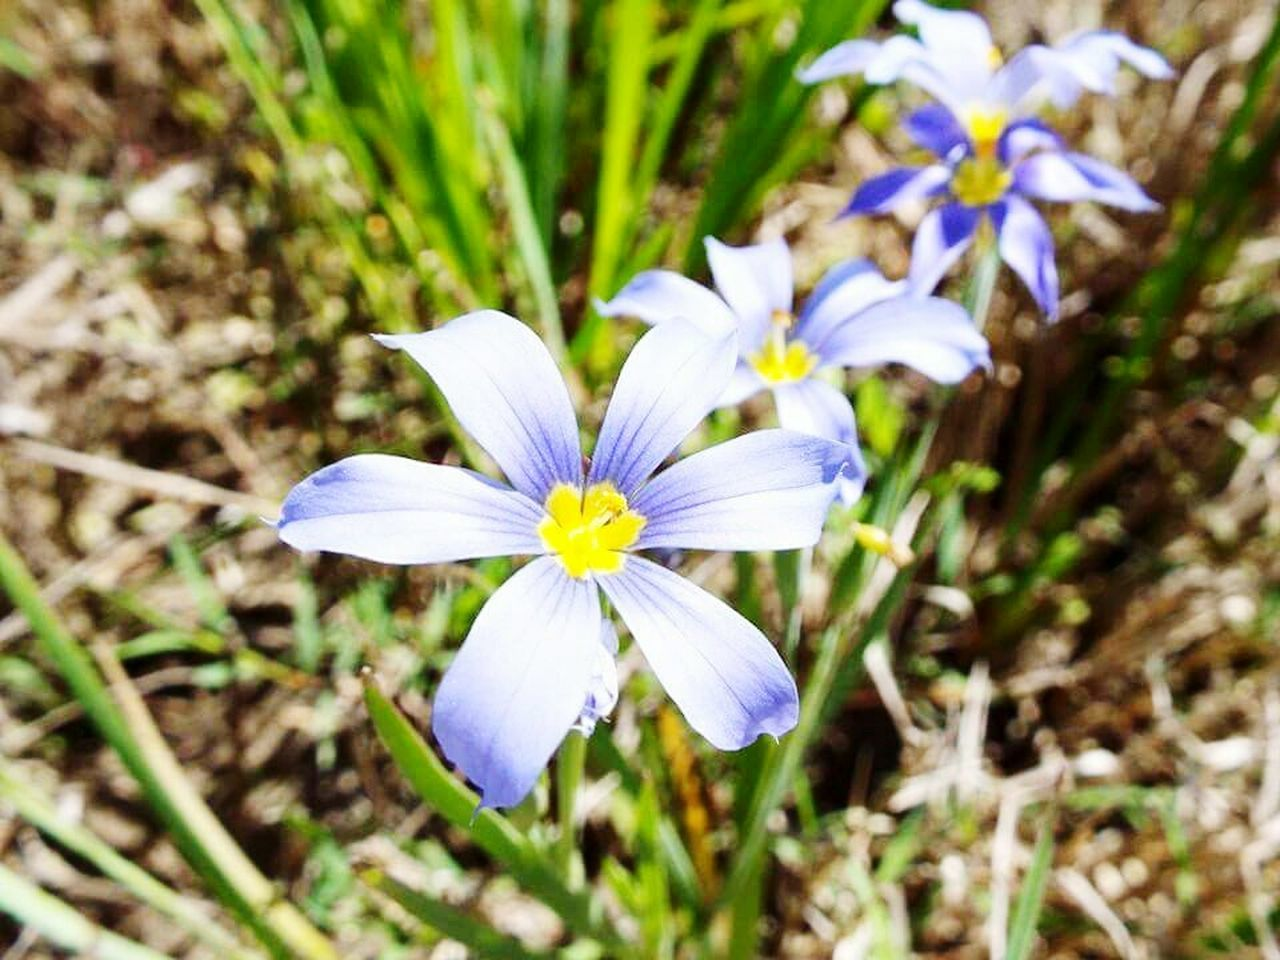 vulnerability, flowering plant, flower, fragility, freshness, plant, petal, beauty in nature, growth, close-up, flower head, inflorescence, purple, nature, day, no people, iris, white color, focus on foreground, field, pollen, crocus